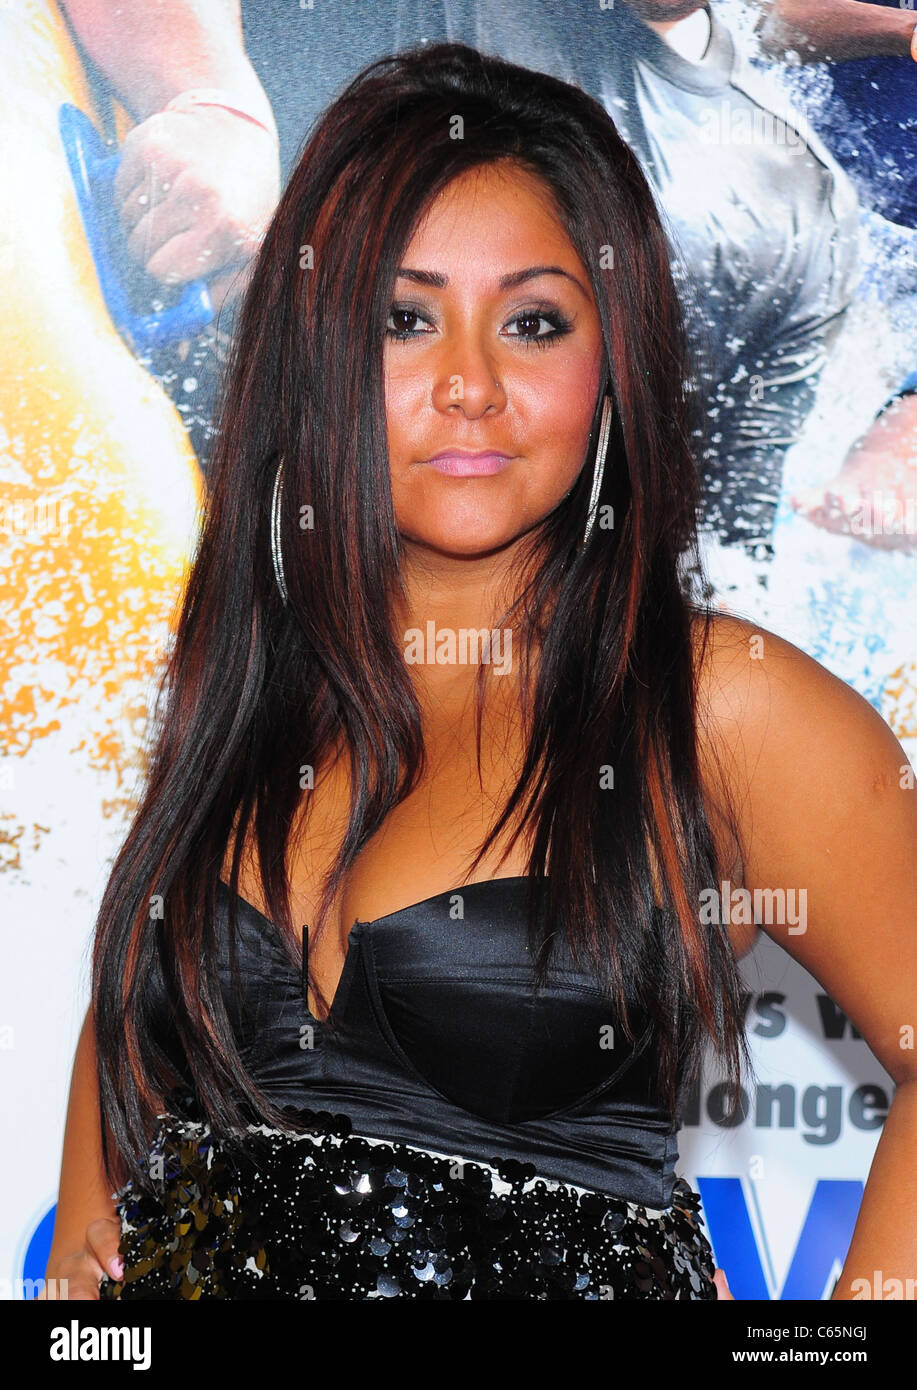 Snooki Hair Stock Photos Snooki Hair Stock Images Alamy